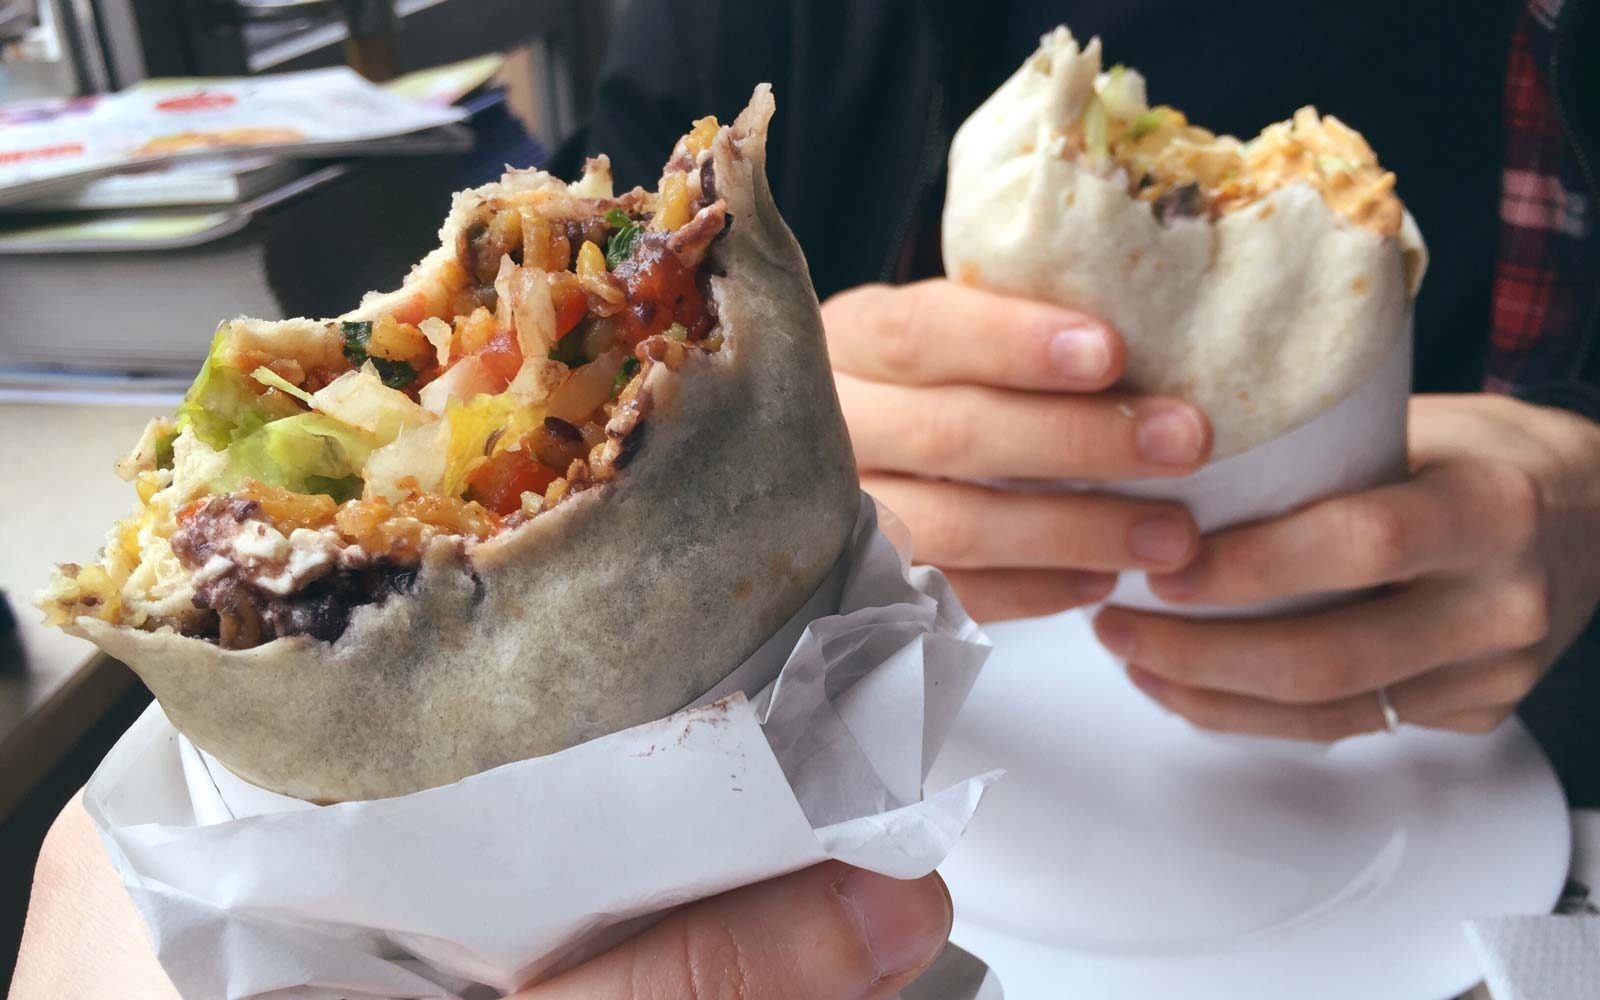 It's National Burrito Day! Here's Where You Can Get Free Burritos and Other Great Deals